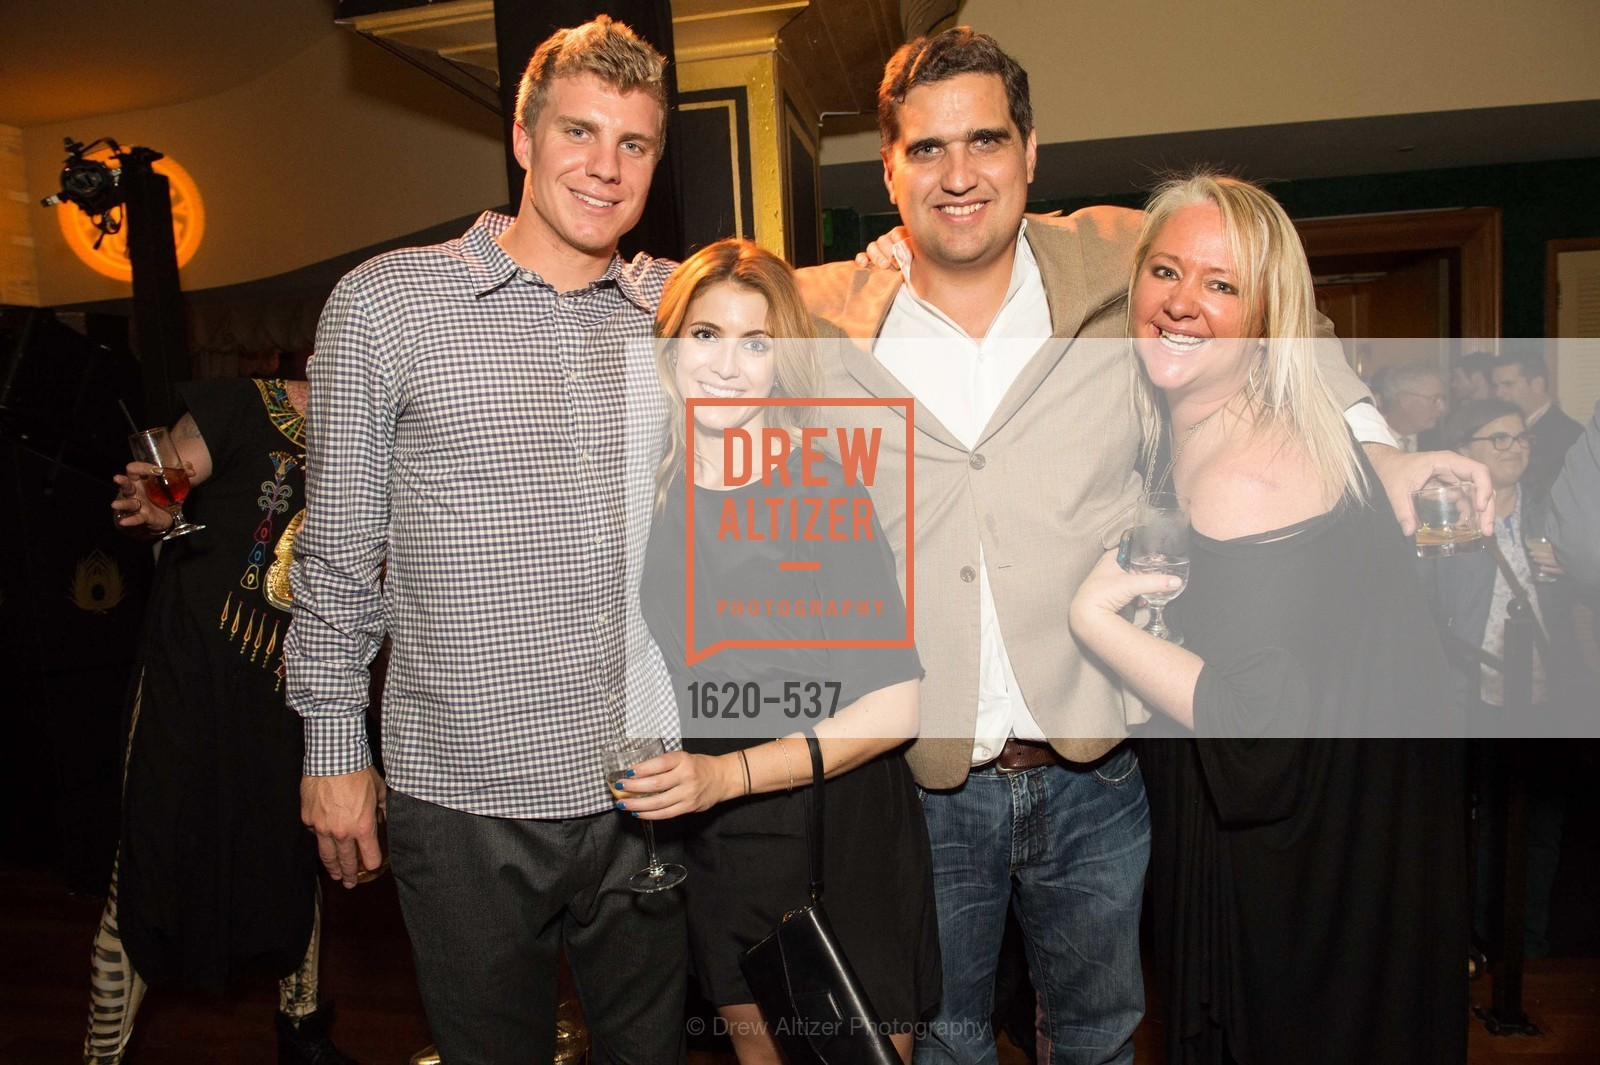 Nate Montana, Ashley Fields, Peter Stern, Lori Puccinelli Stern, TOP OF THE MARK'S 75TH Anniversary Party, US, November 7th, 2014,Drew Altizer, Drew Altizer Photography, full-service agency, private events, San Francisco photographer, photographer california